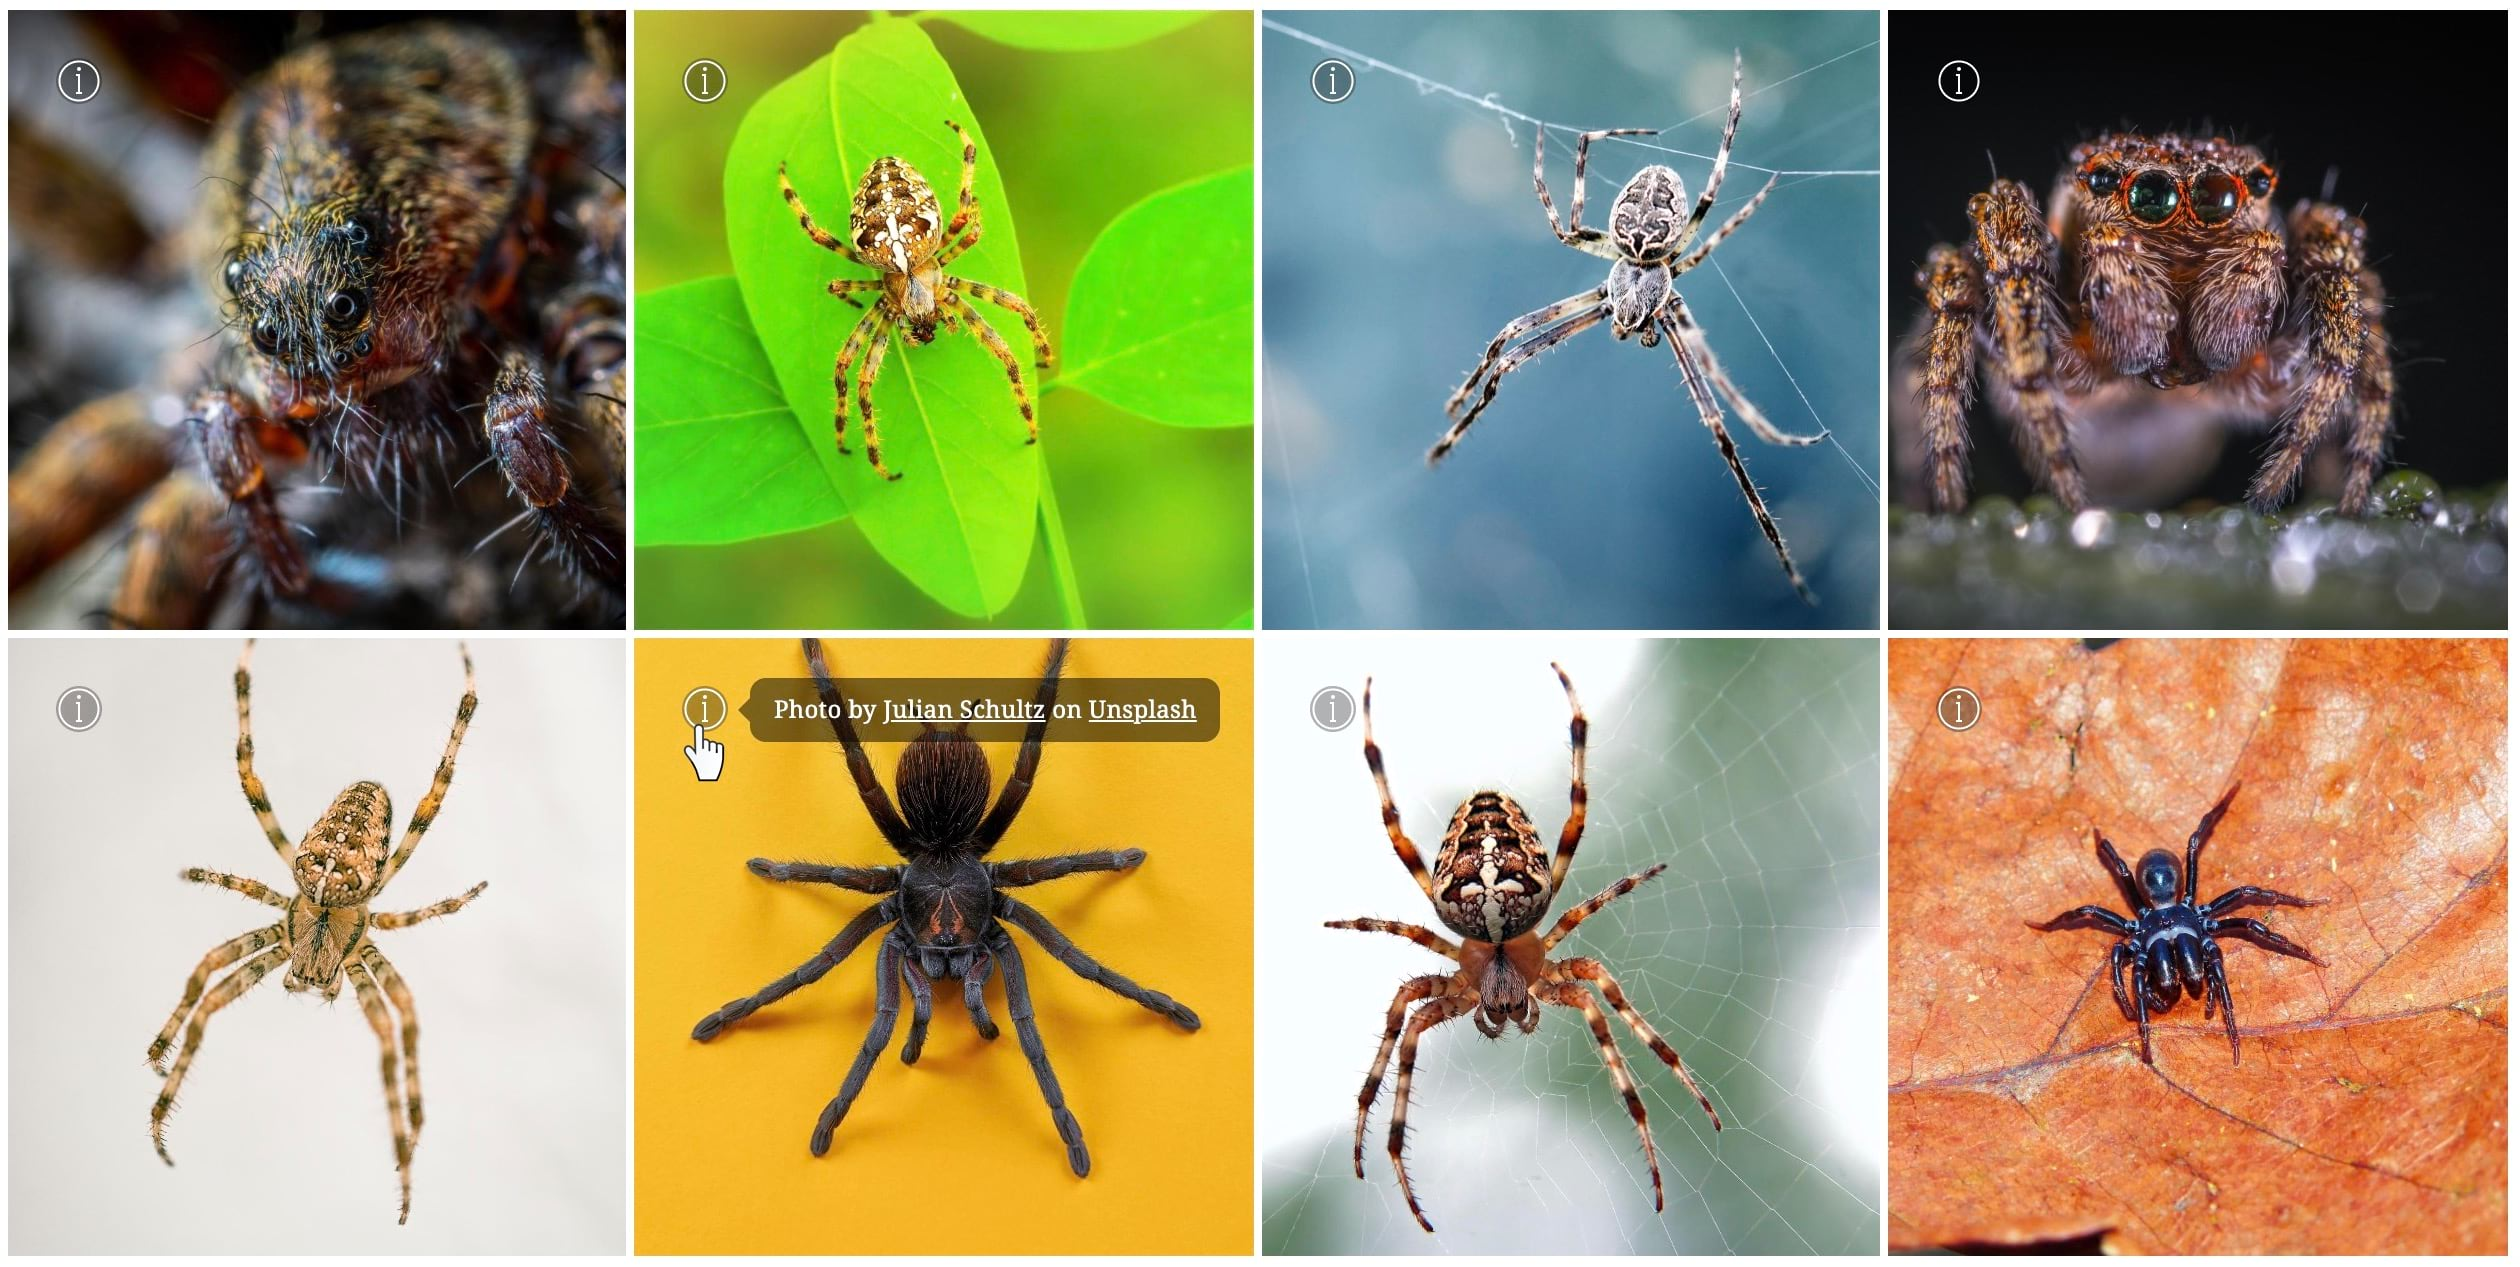 A collage of spider photos